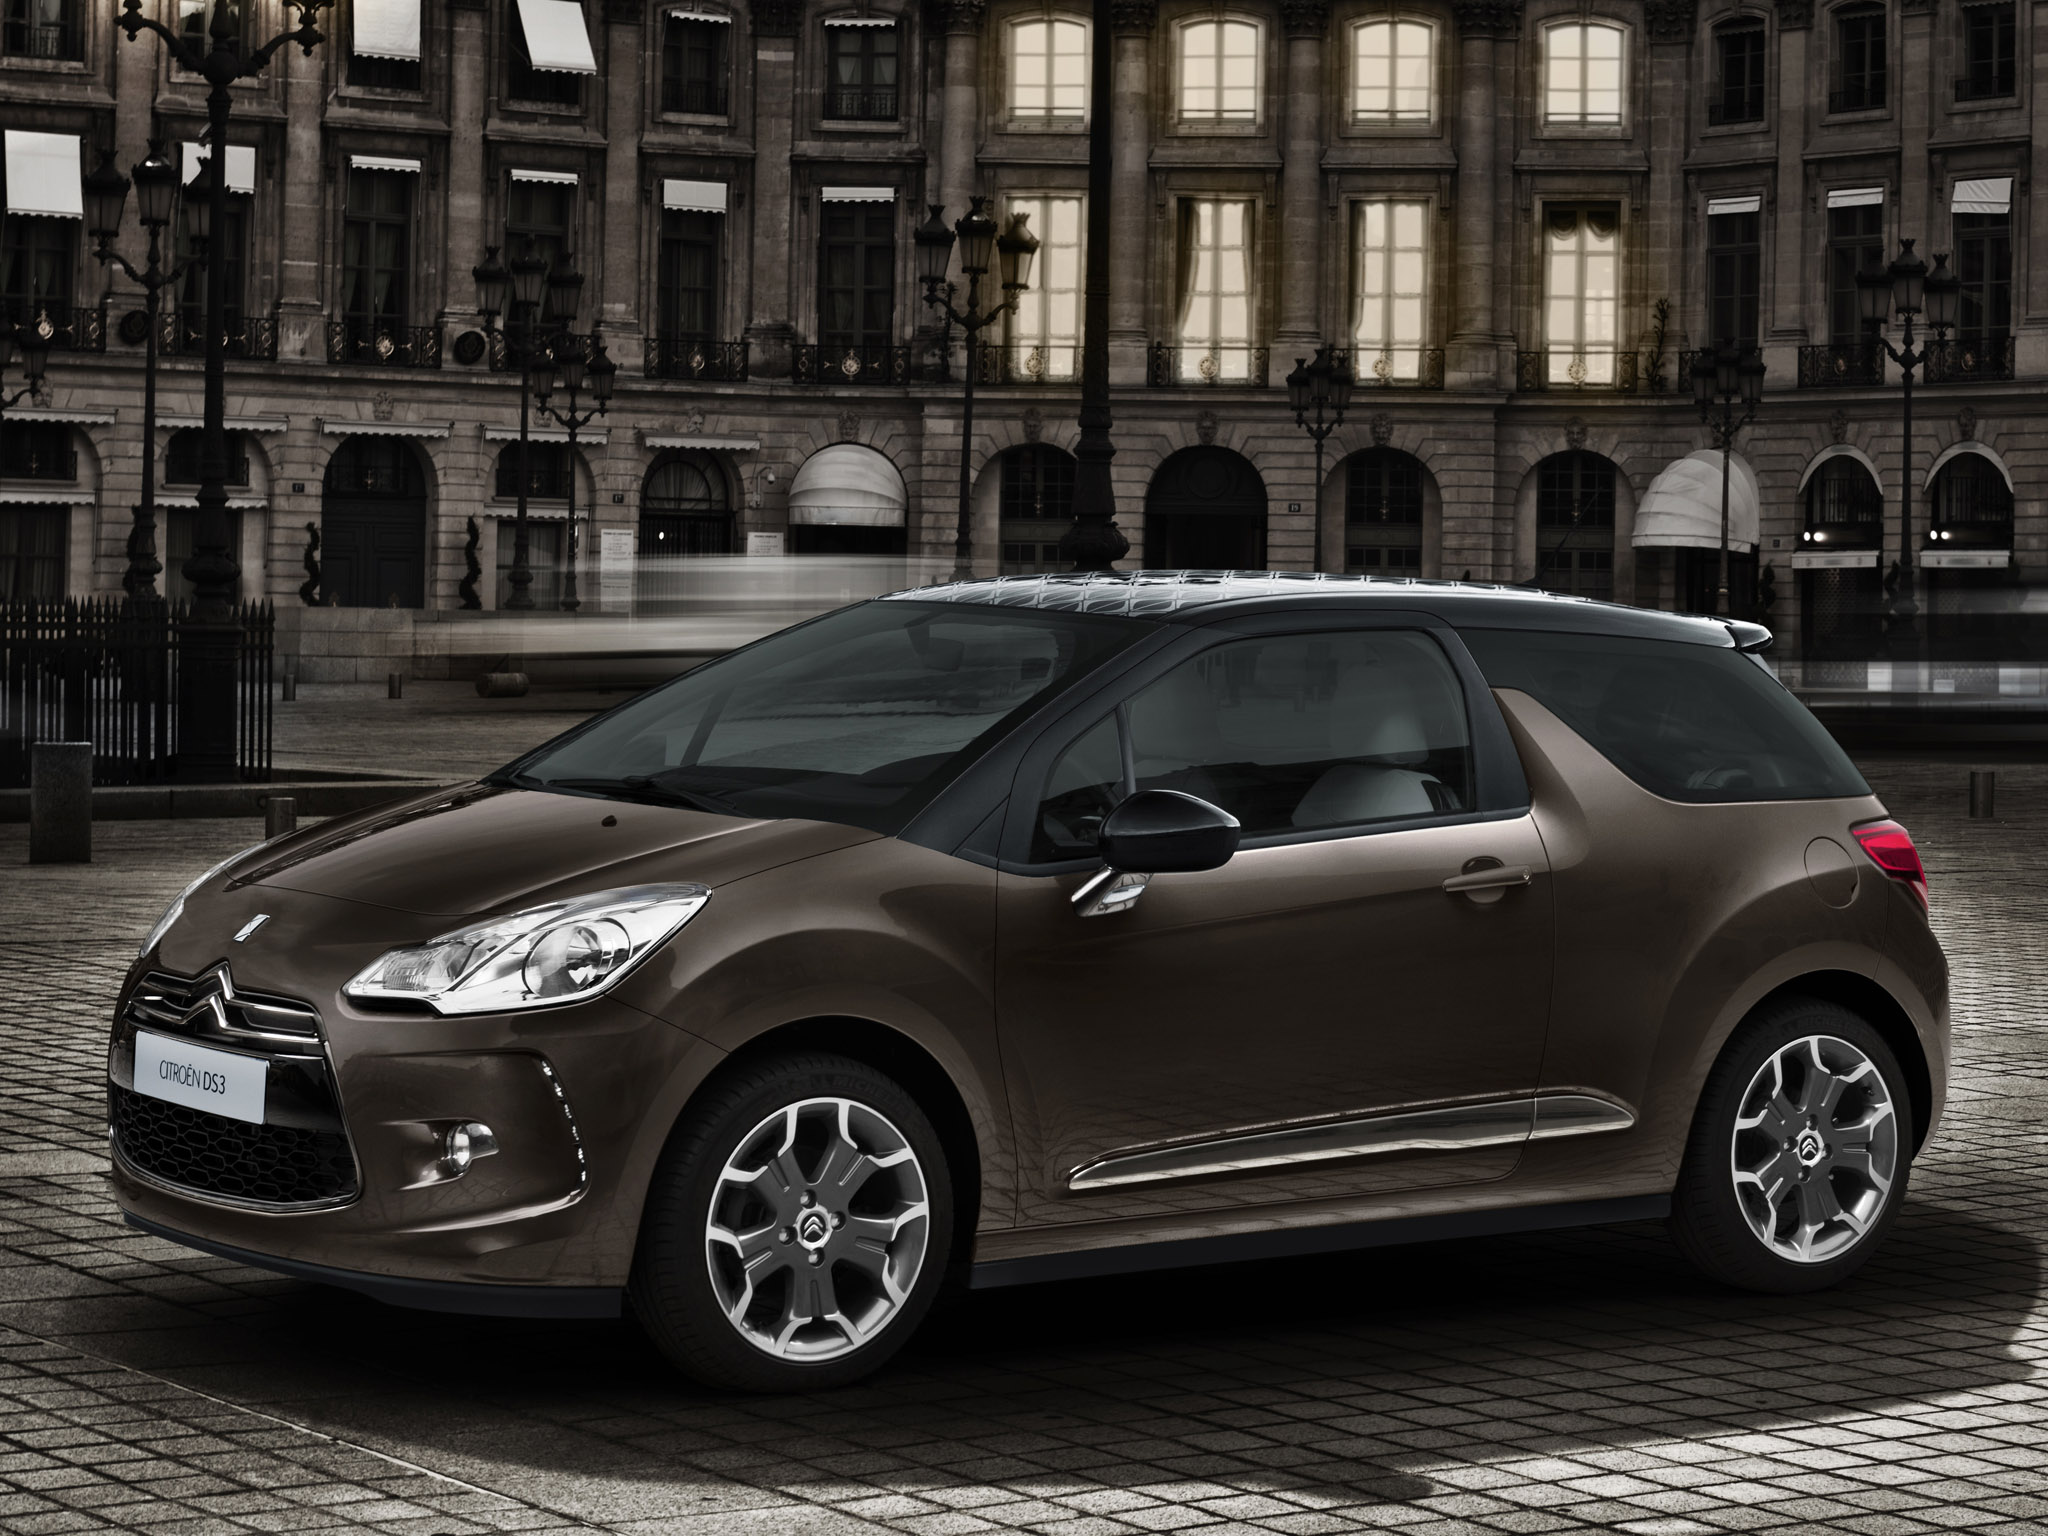 citroen ds3 ultra prestige 2011 citroen ds3 ultra prestige 2011 photo 05 car in pictures car. Black Bedroom Furniture Sets. Home Design Ideas